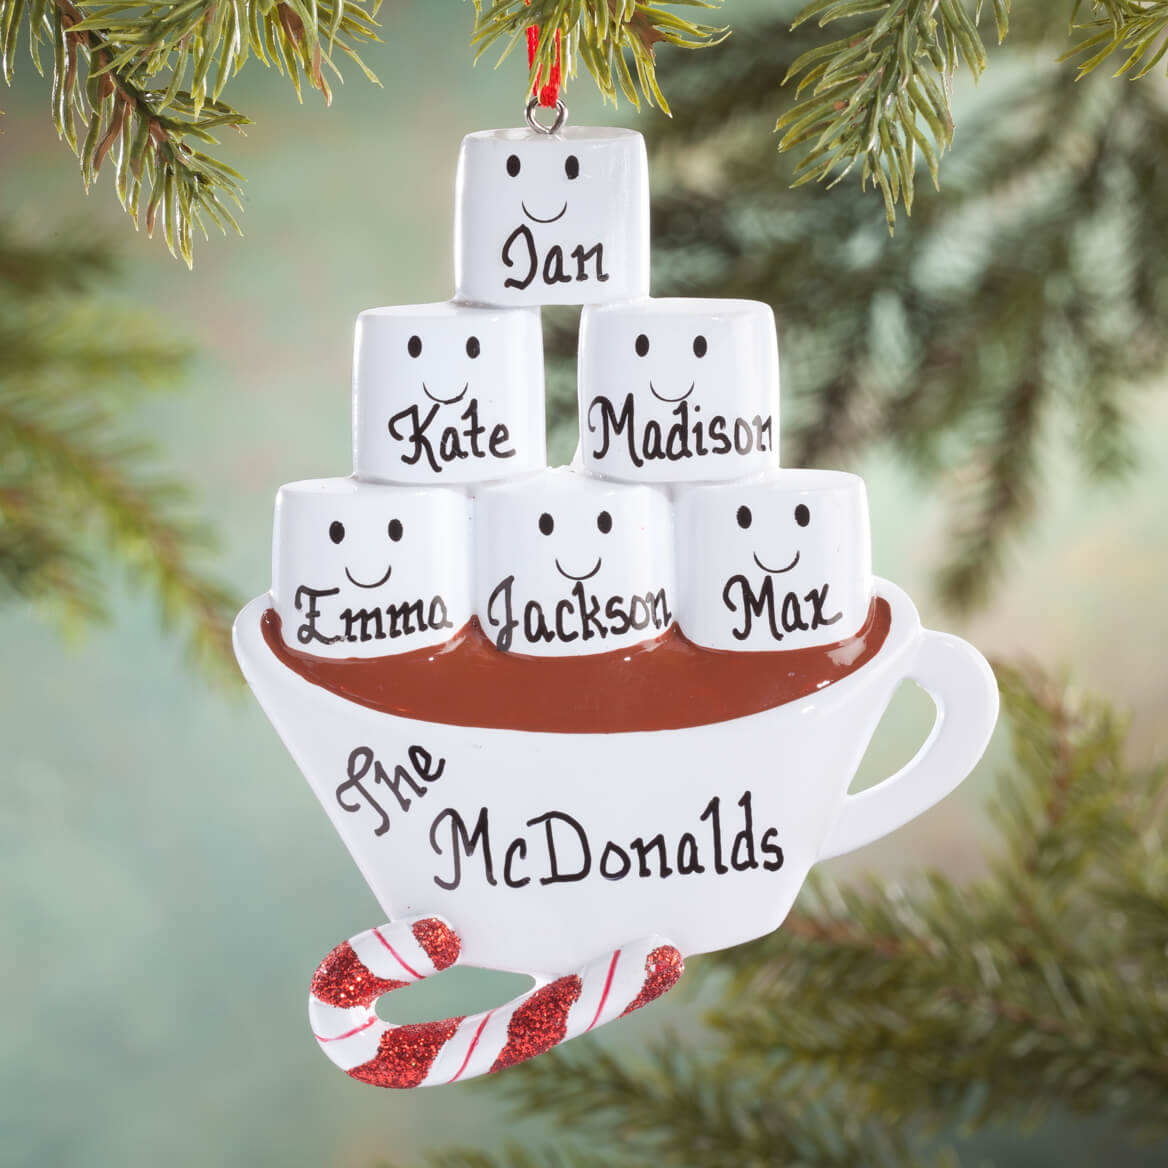 Personalized Hot Chocolate Family Ornament - Miles Kimball